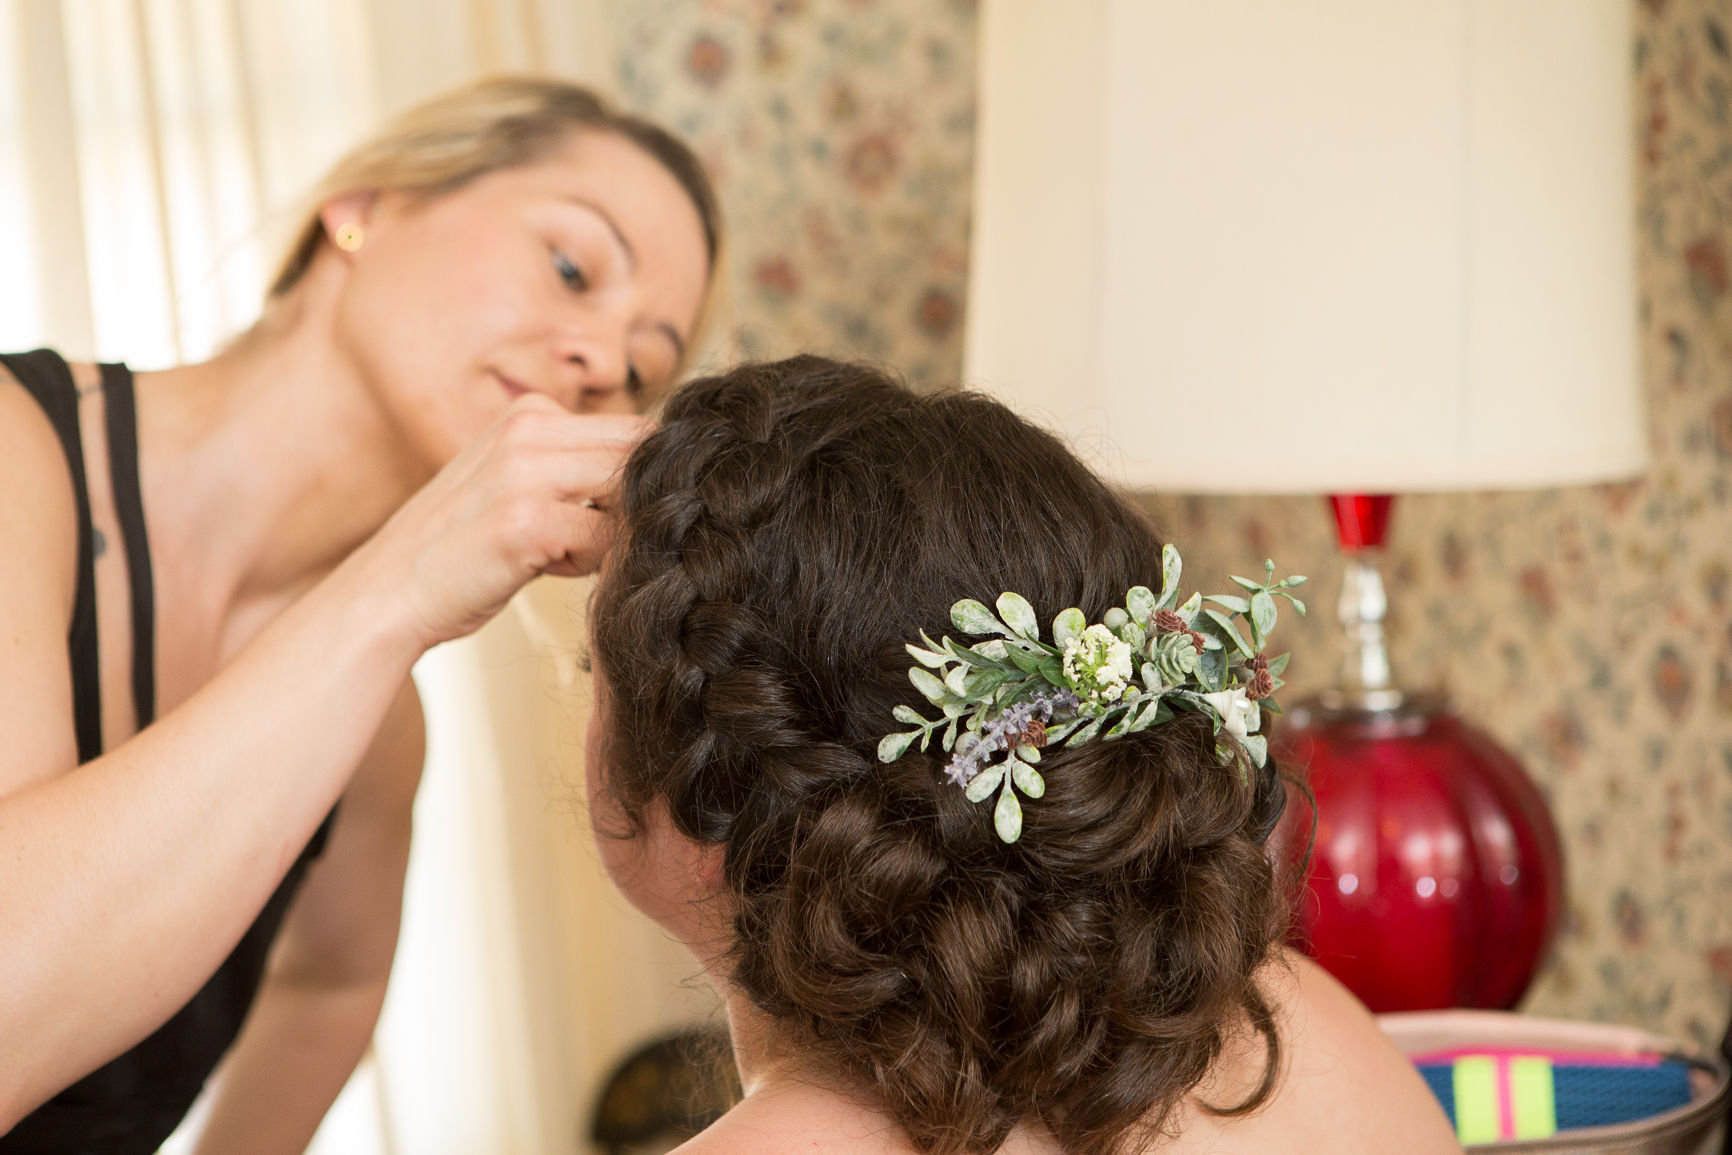 101 studio llc -Bride getting ready picture 19.jpg